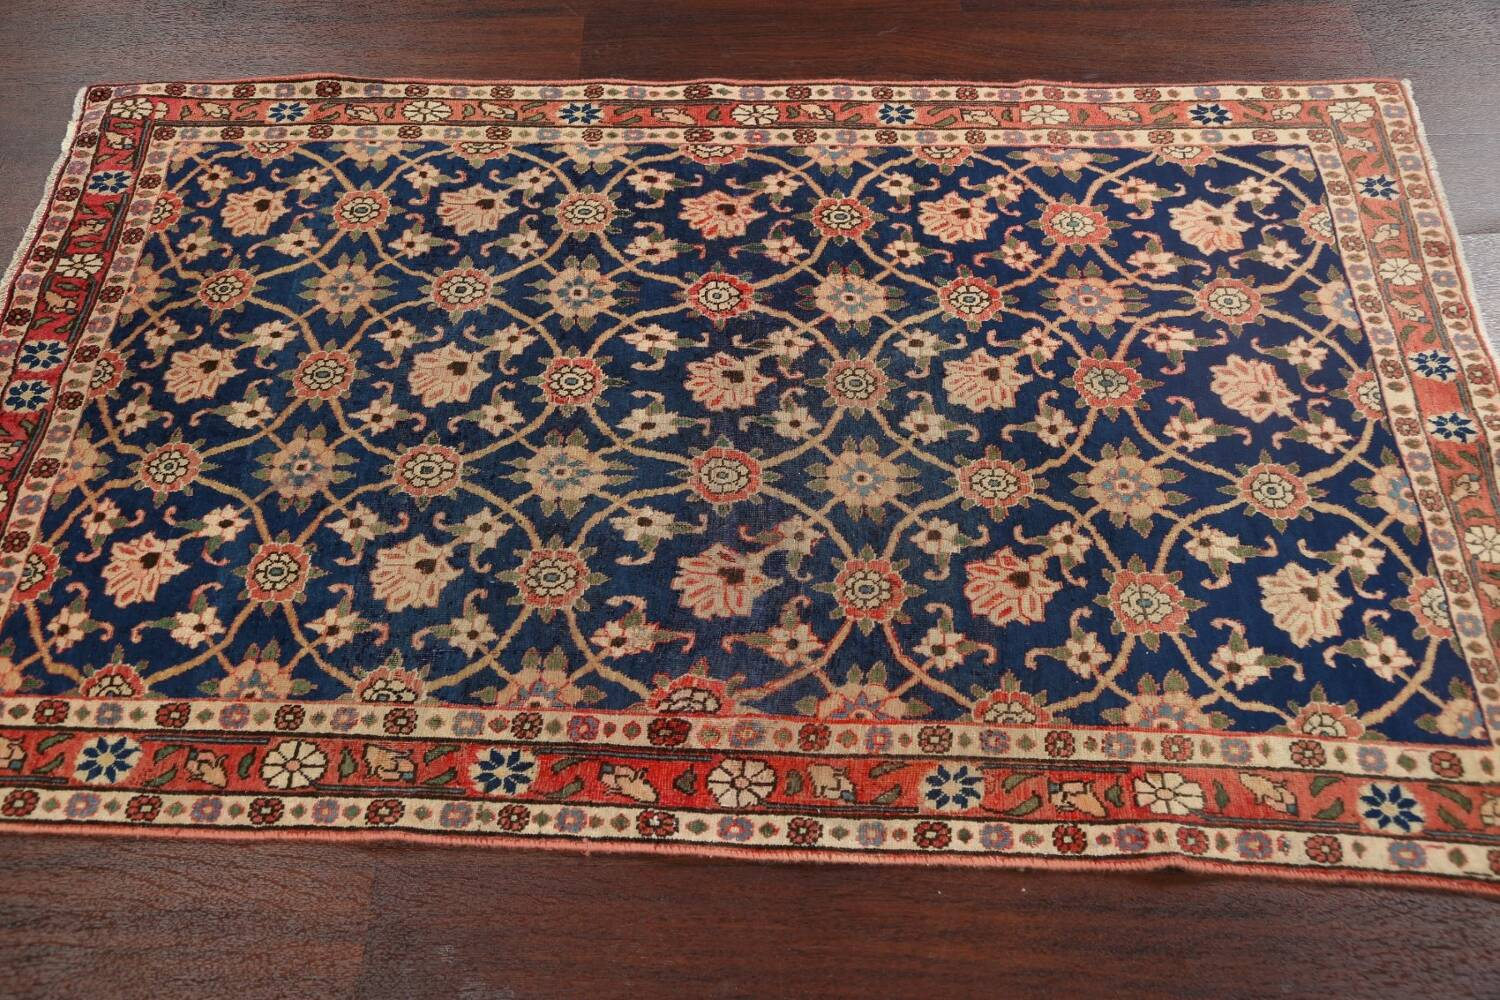 Antique Vegetable Dye Isfahan Persian Area Rug 3x5 image 13